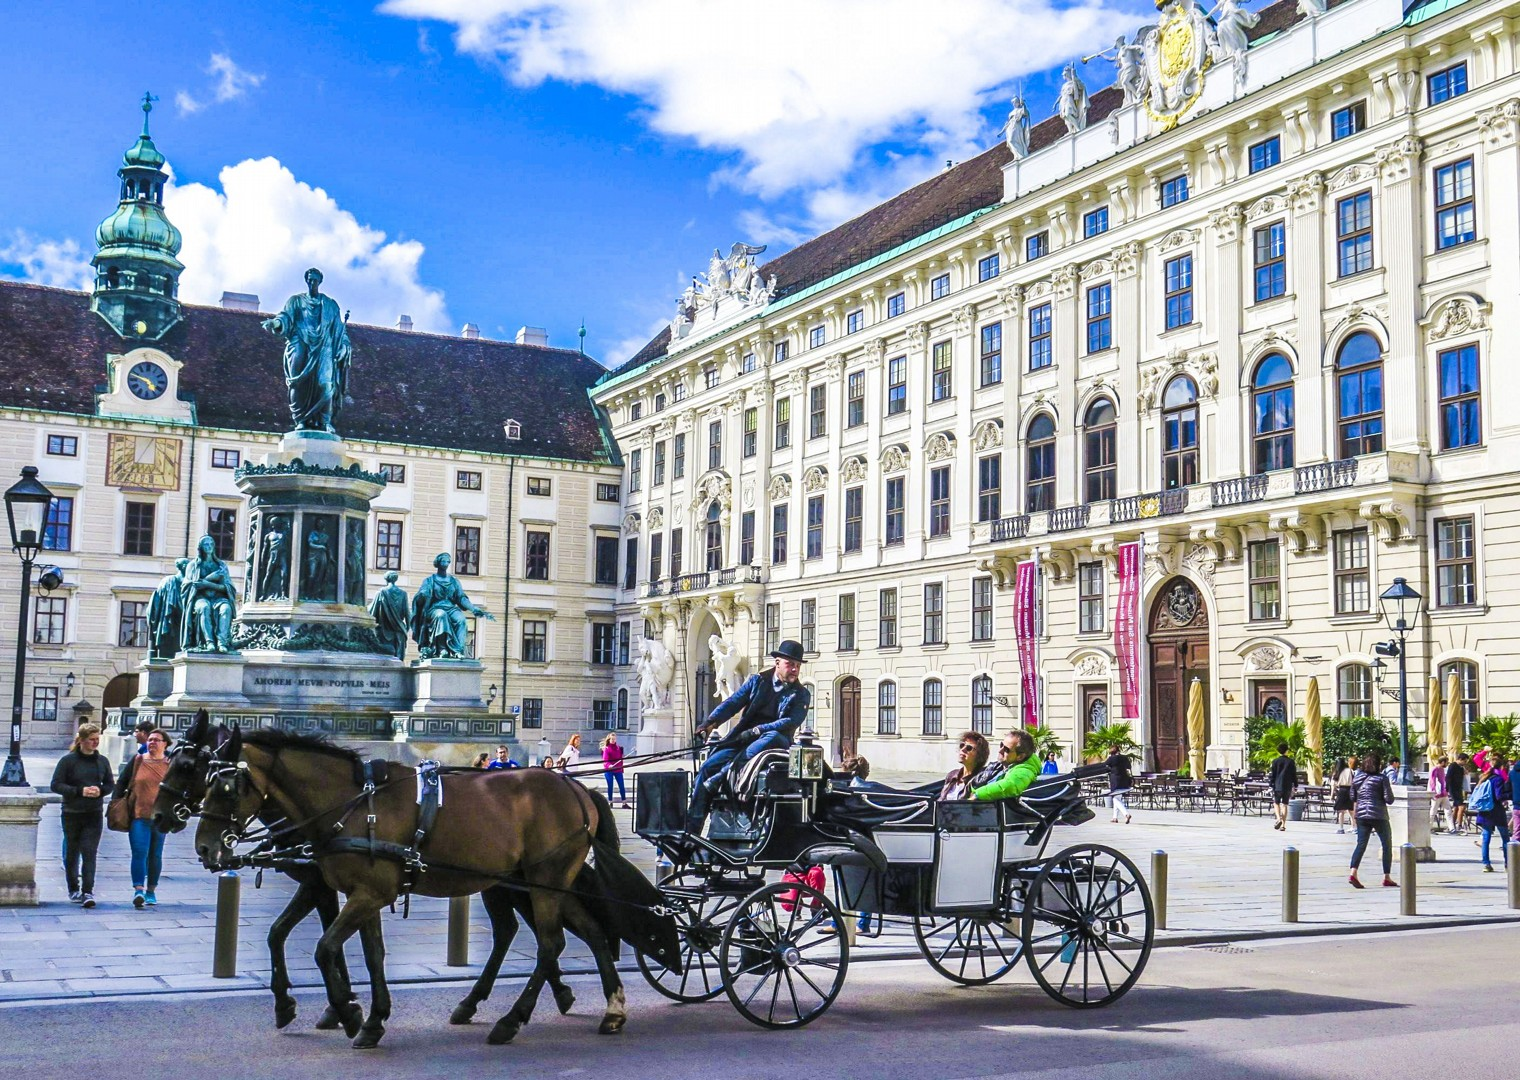 the-hofburg-palace-vienna-austria-bike-tour-family-culture-fun.jpg - Austria - Blue Danube - Linz to Vienna - Family Cycling